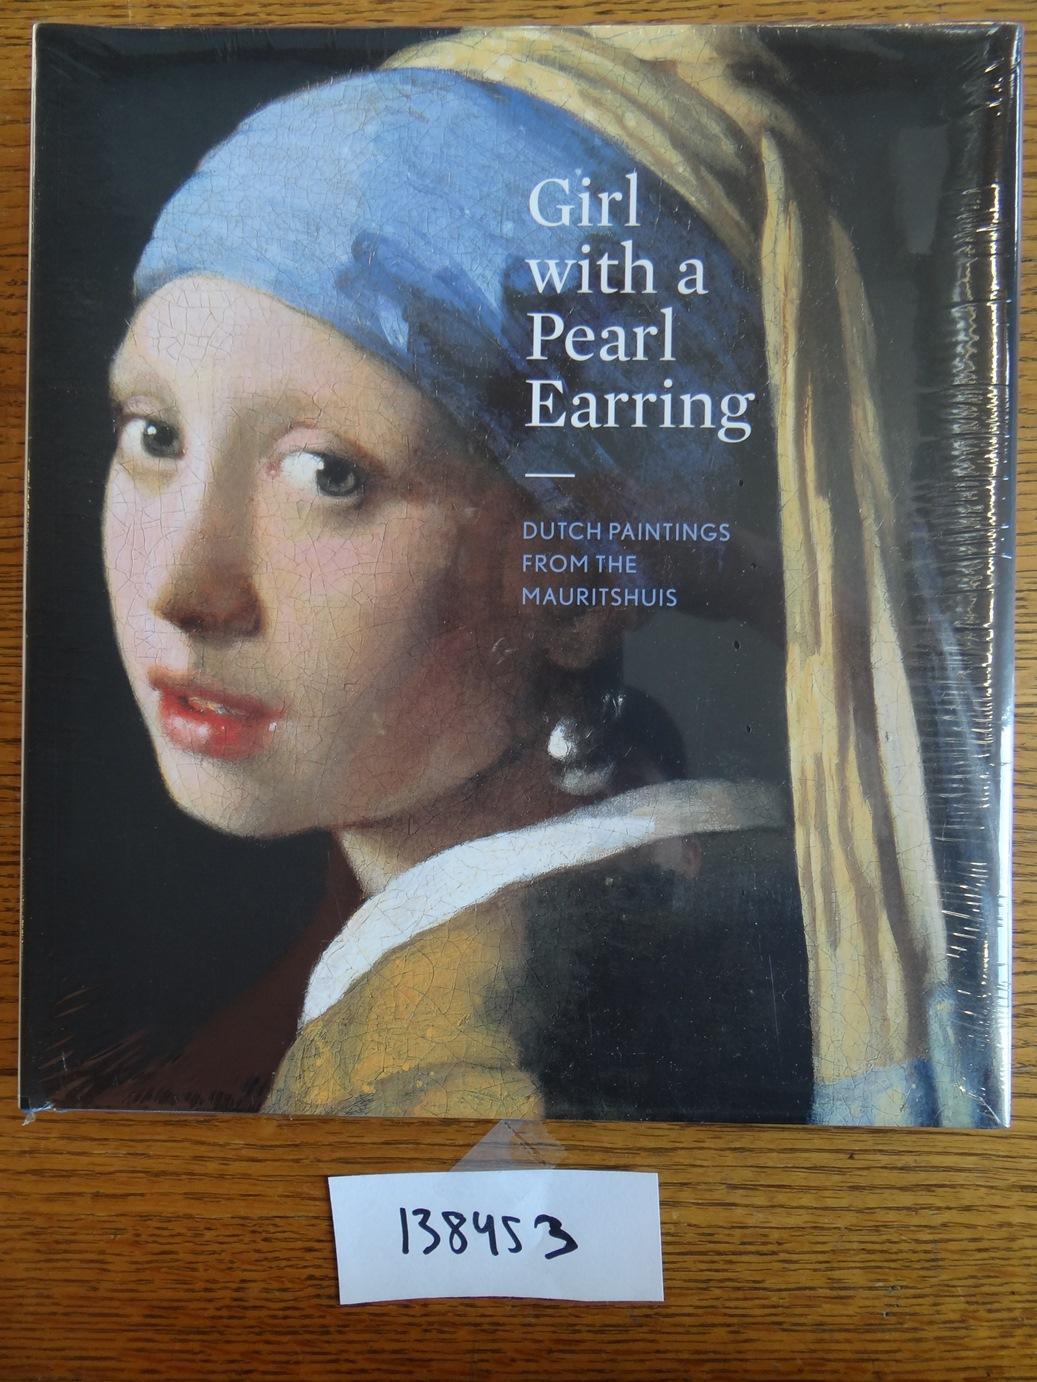 Girl with a Pearl Earring: Dutch Paintings from the Mauritshuis - van der Vinde, Lea (ed.)